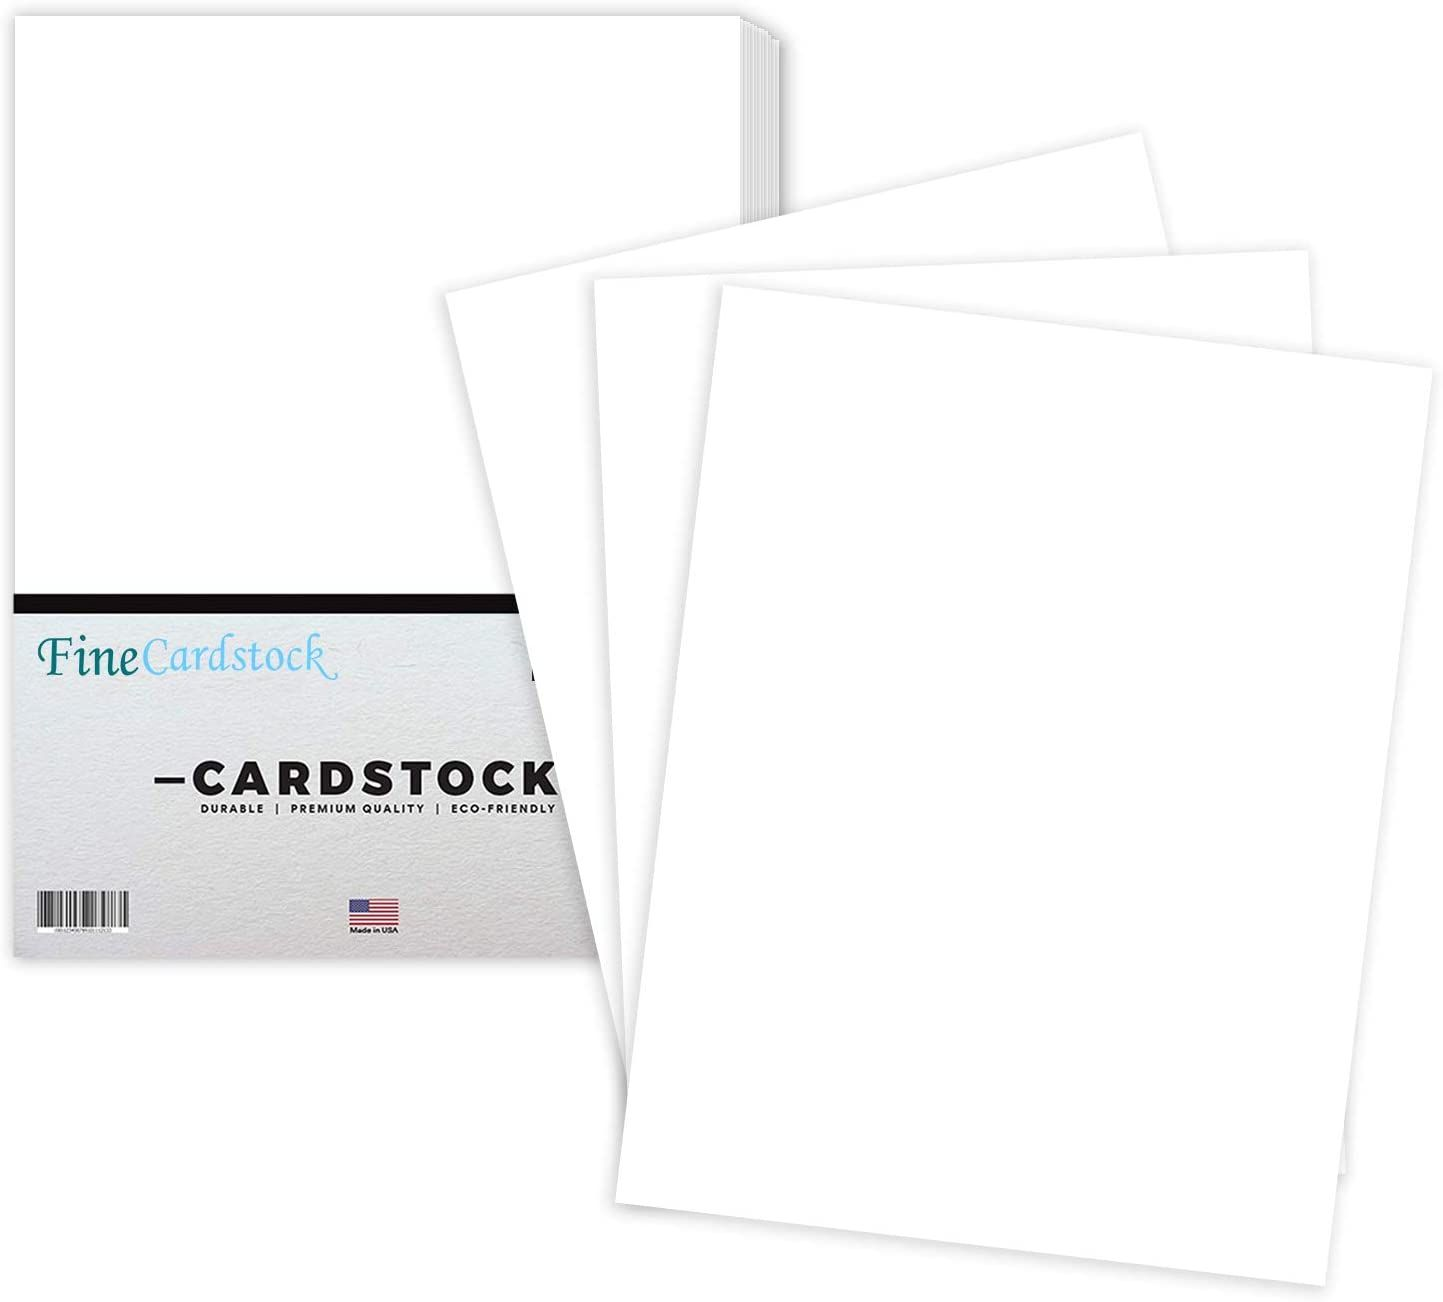 White Cardstock Thick Paper For School Arts And Crafts Invitations Stationary Printing 65 Card Stock Cover Stock Arts And Crafts